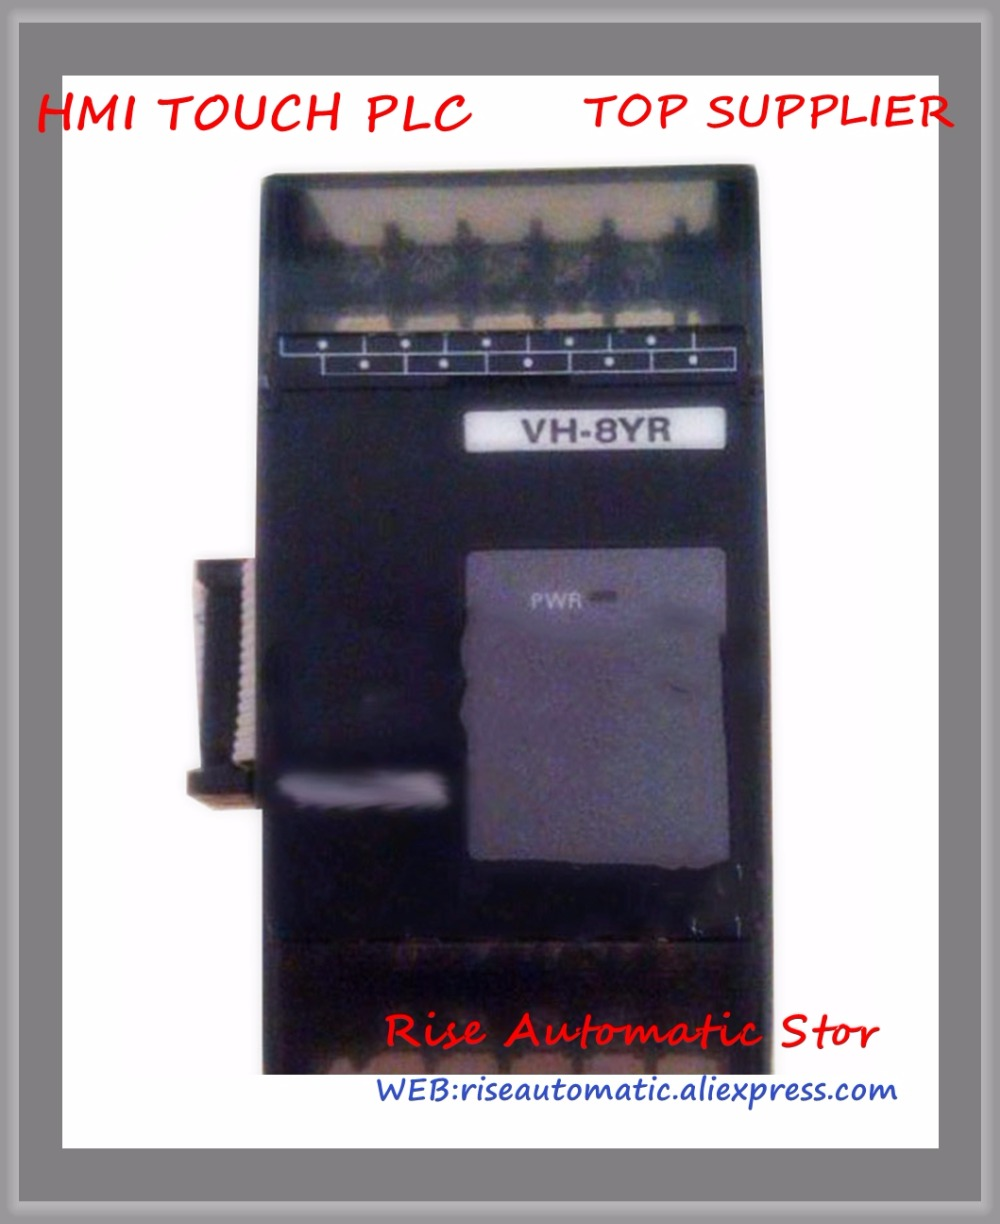 купить VH-8YR PLC New Original 24VDC relay 8 point Expansion Module High-quality по цене 6024.73 рублей